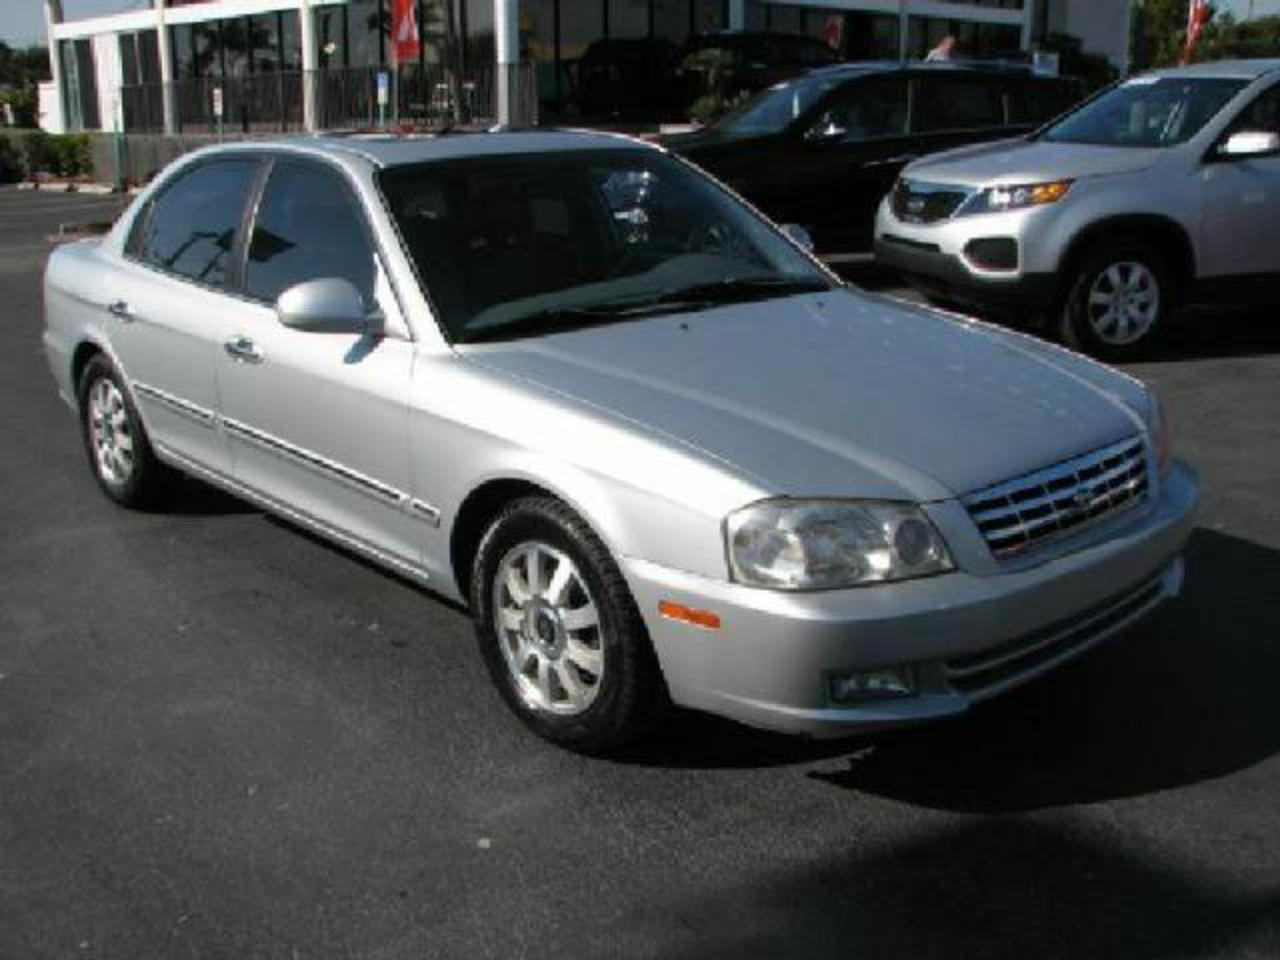 Price of 1998 Kia Optima SE V6 car